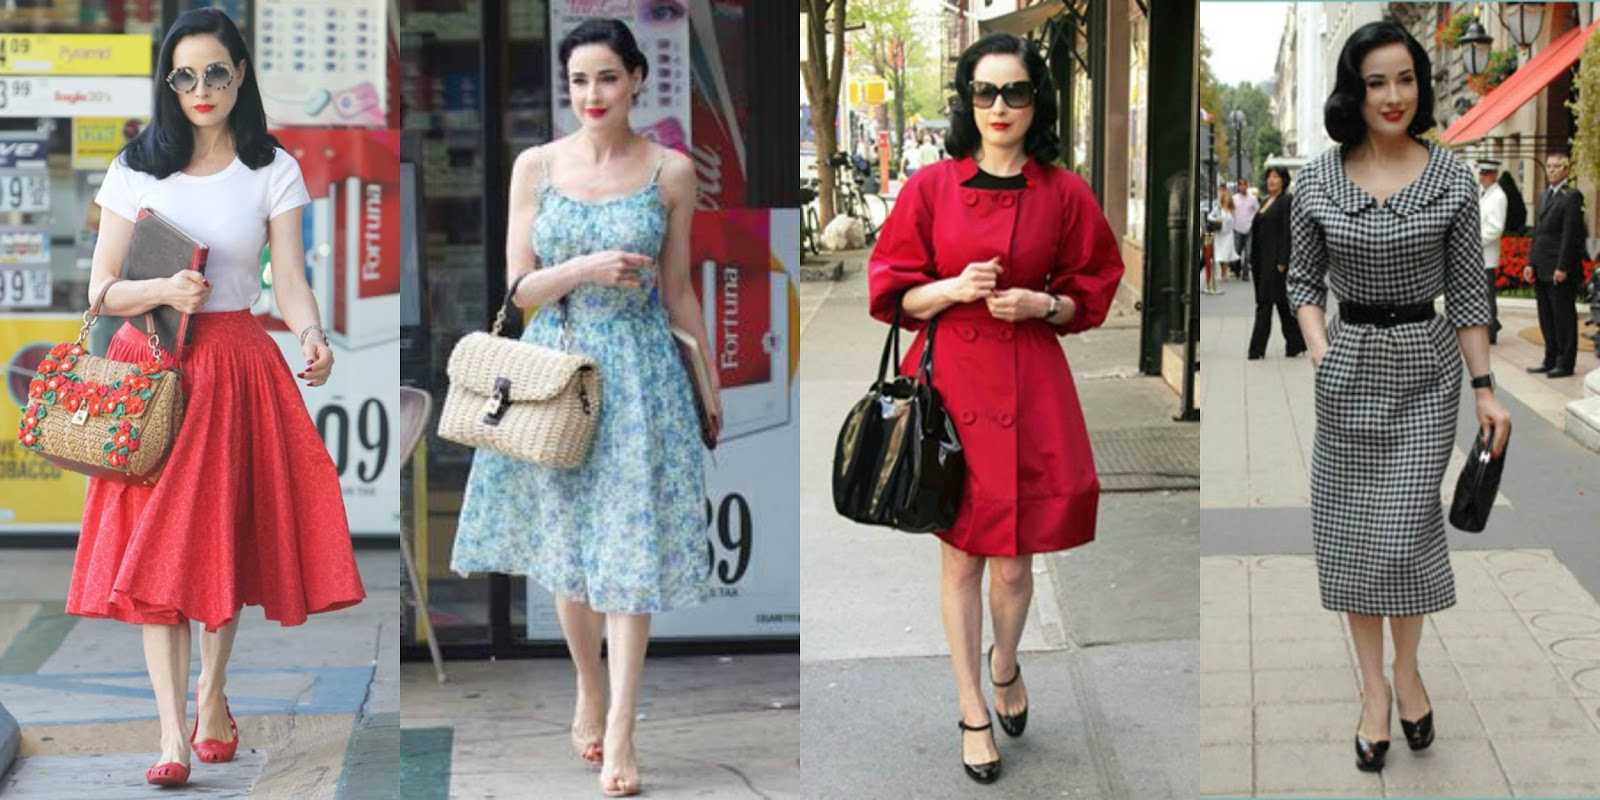 Wedding Dita Von Teese Wedding Dress tanya natazsha beauty and style icon dita von teese if you think her is not unconventional enough this wedding gown when she got married with marilyn manson